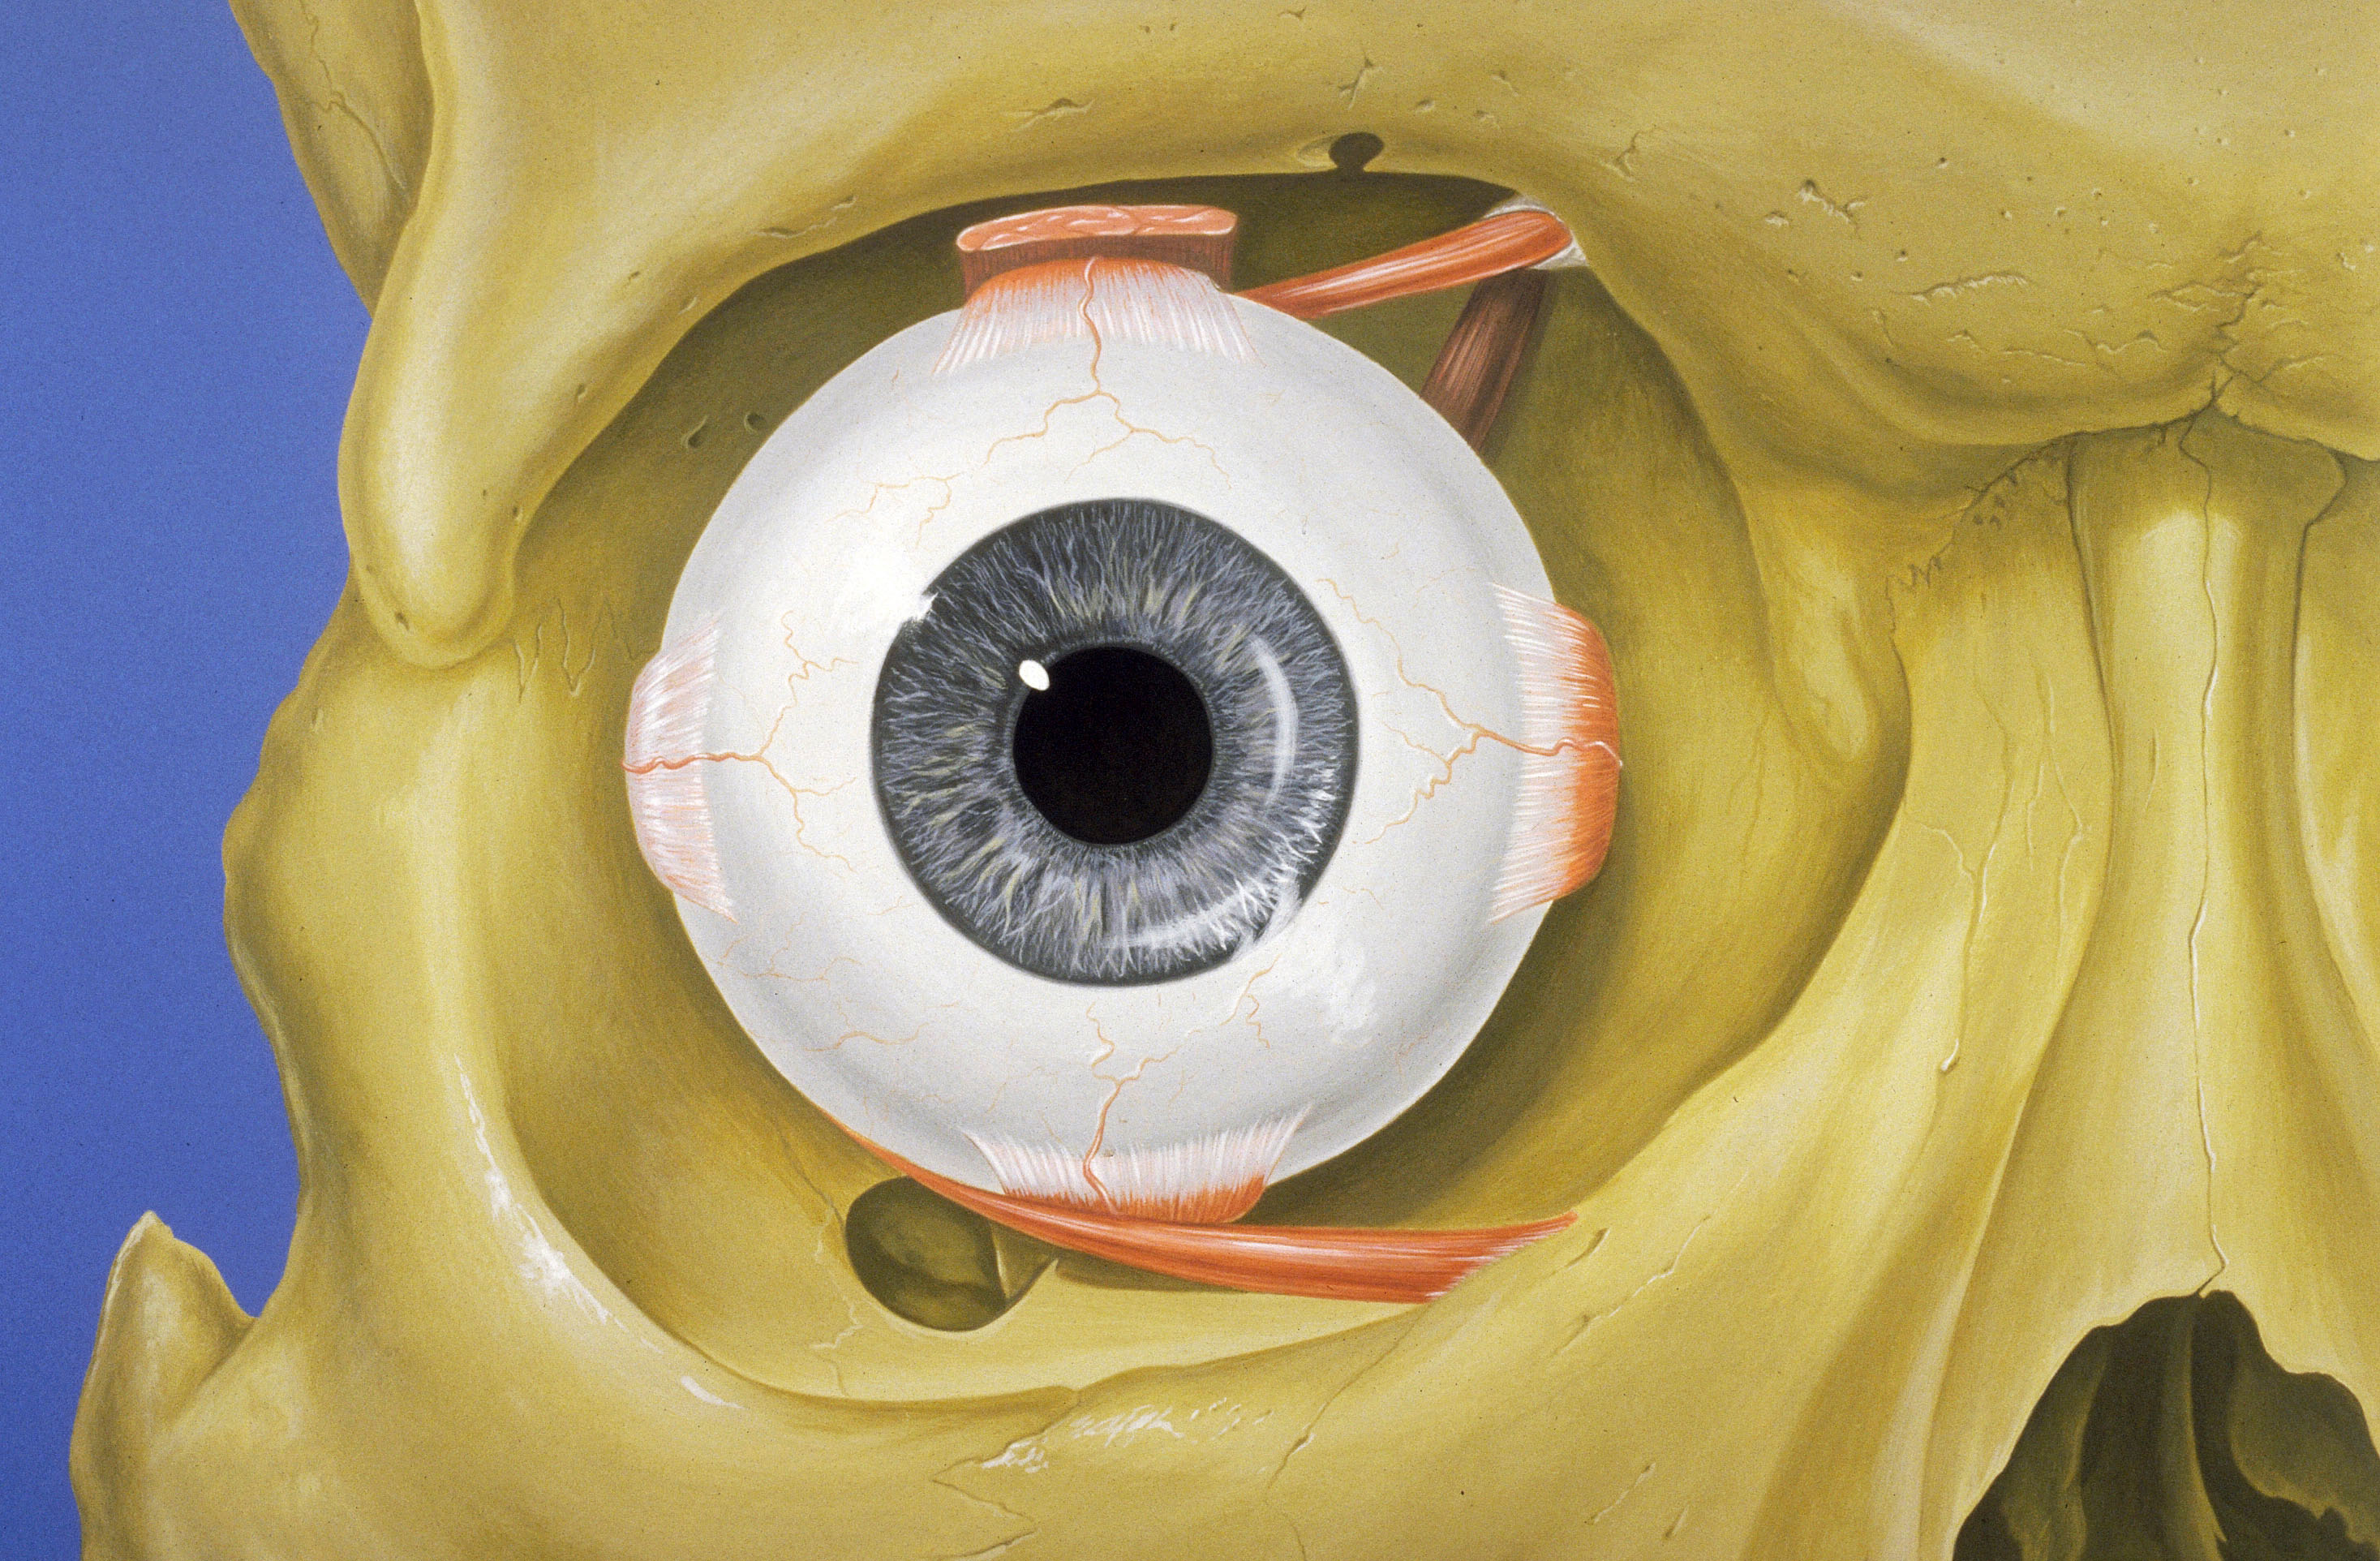 File:Eye orbit anatomy anterior.jpg - Wikimedia Commons